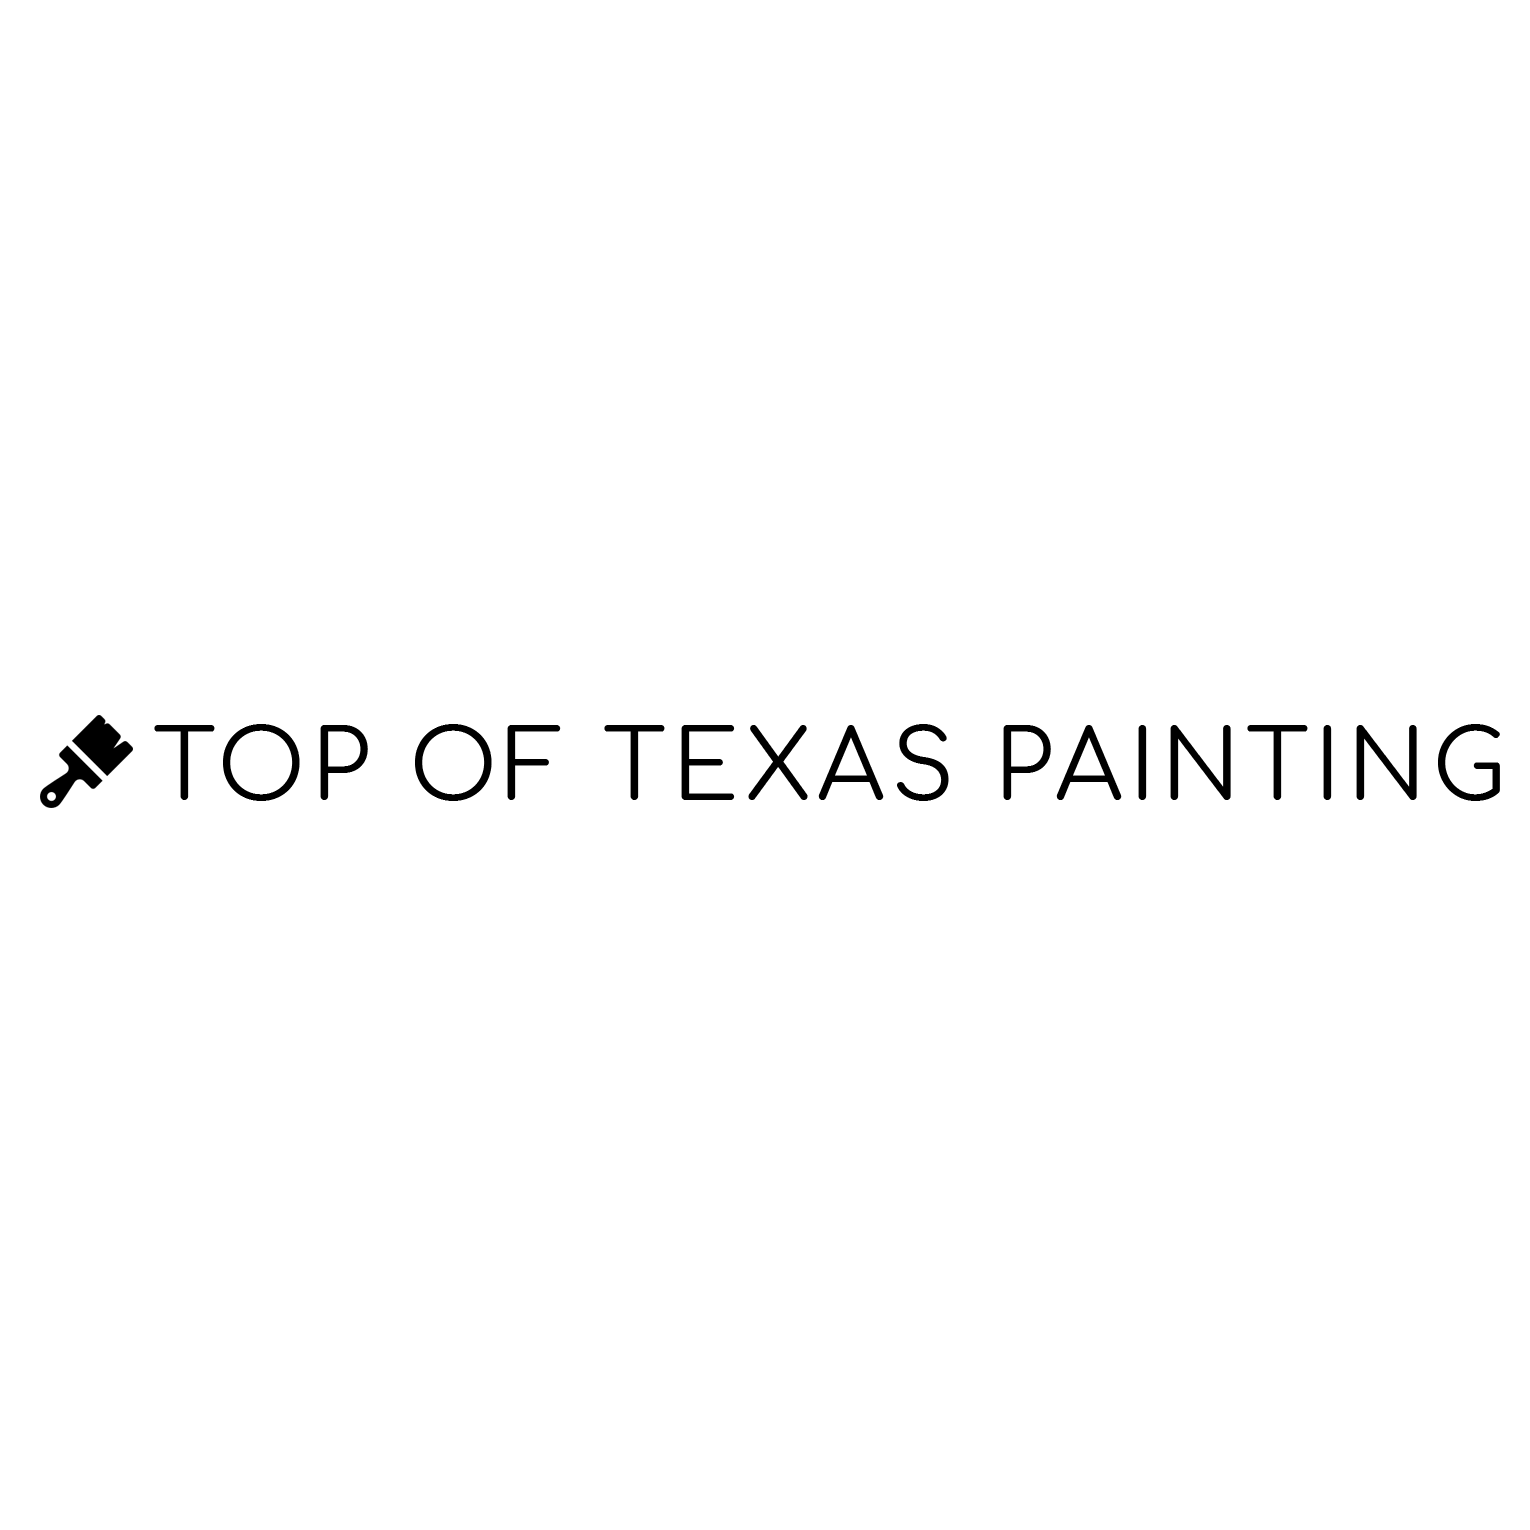 Top of Texas Painting